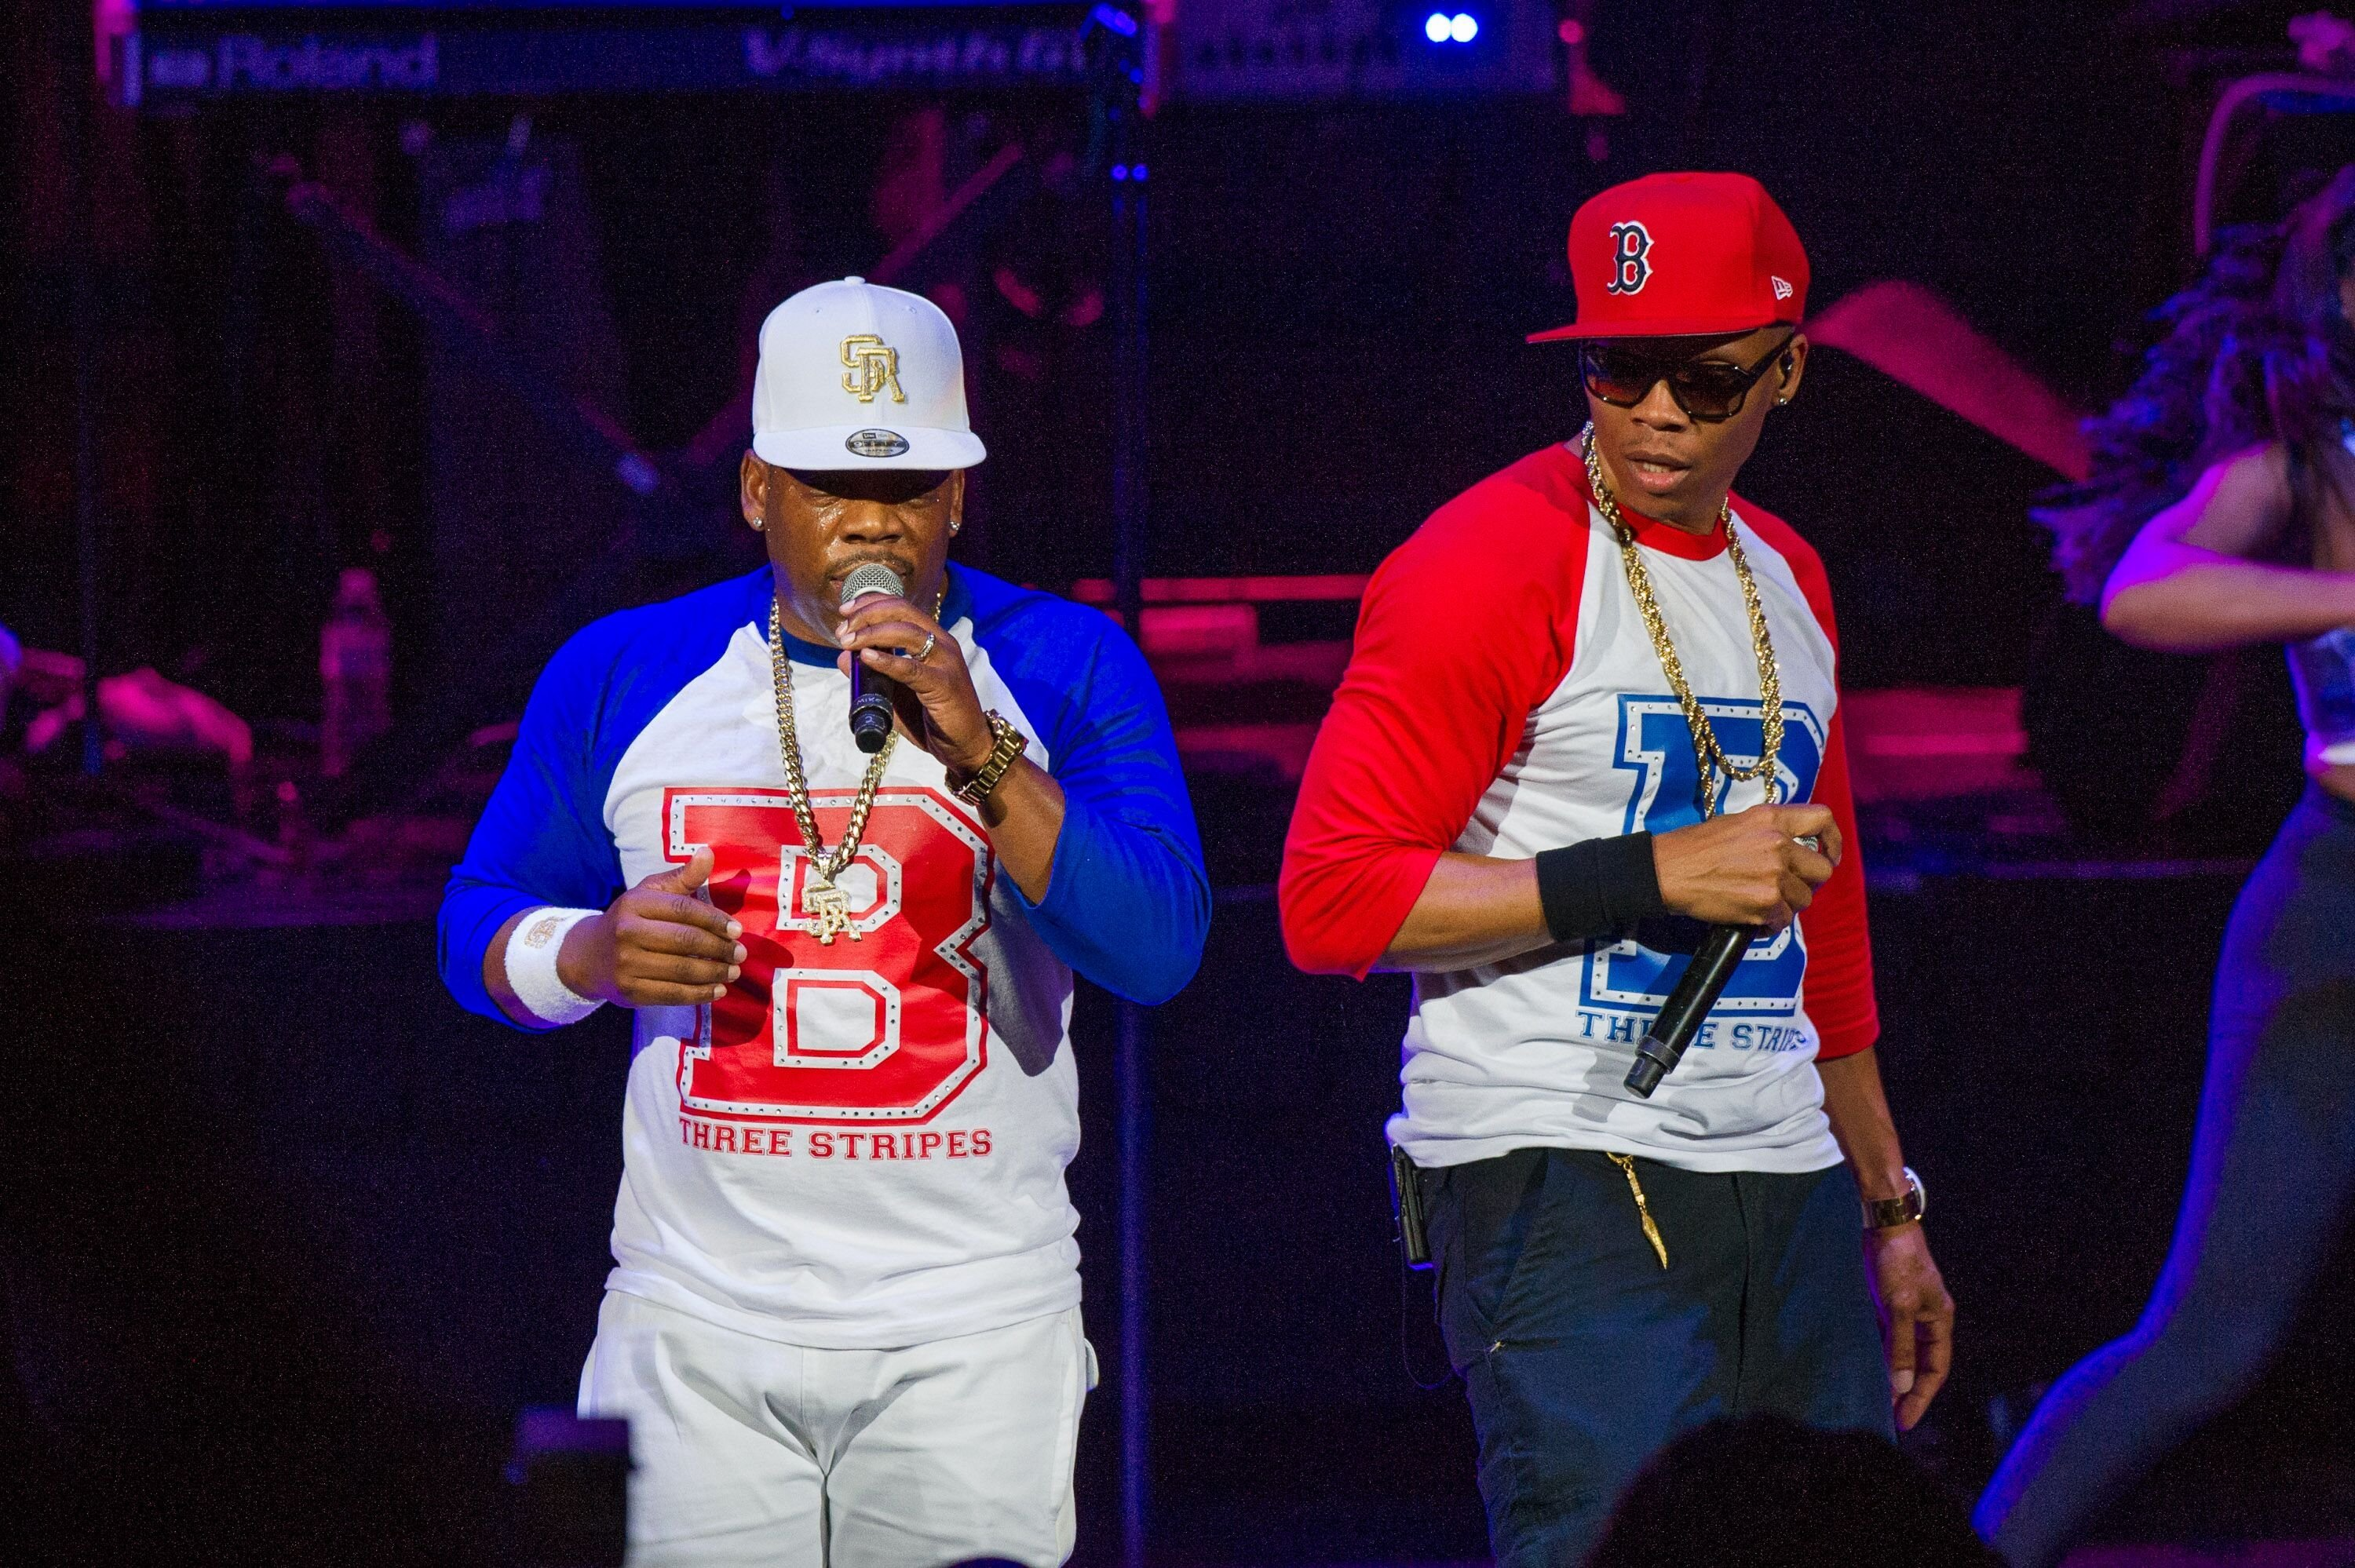 """New Edition"" members performing onstage at a concert 